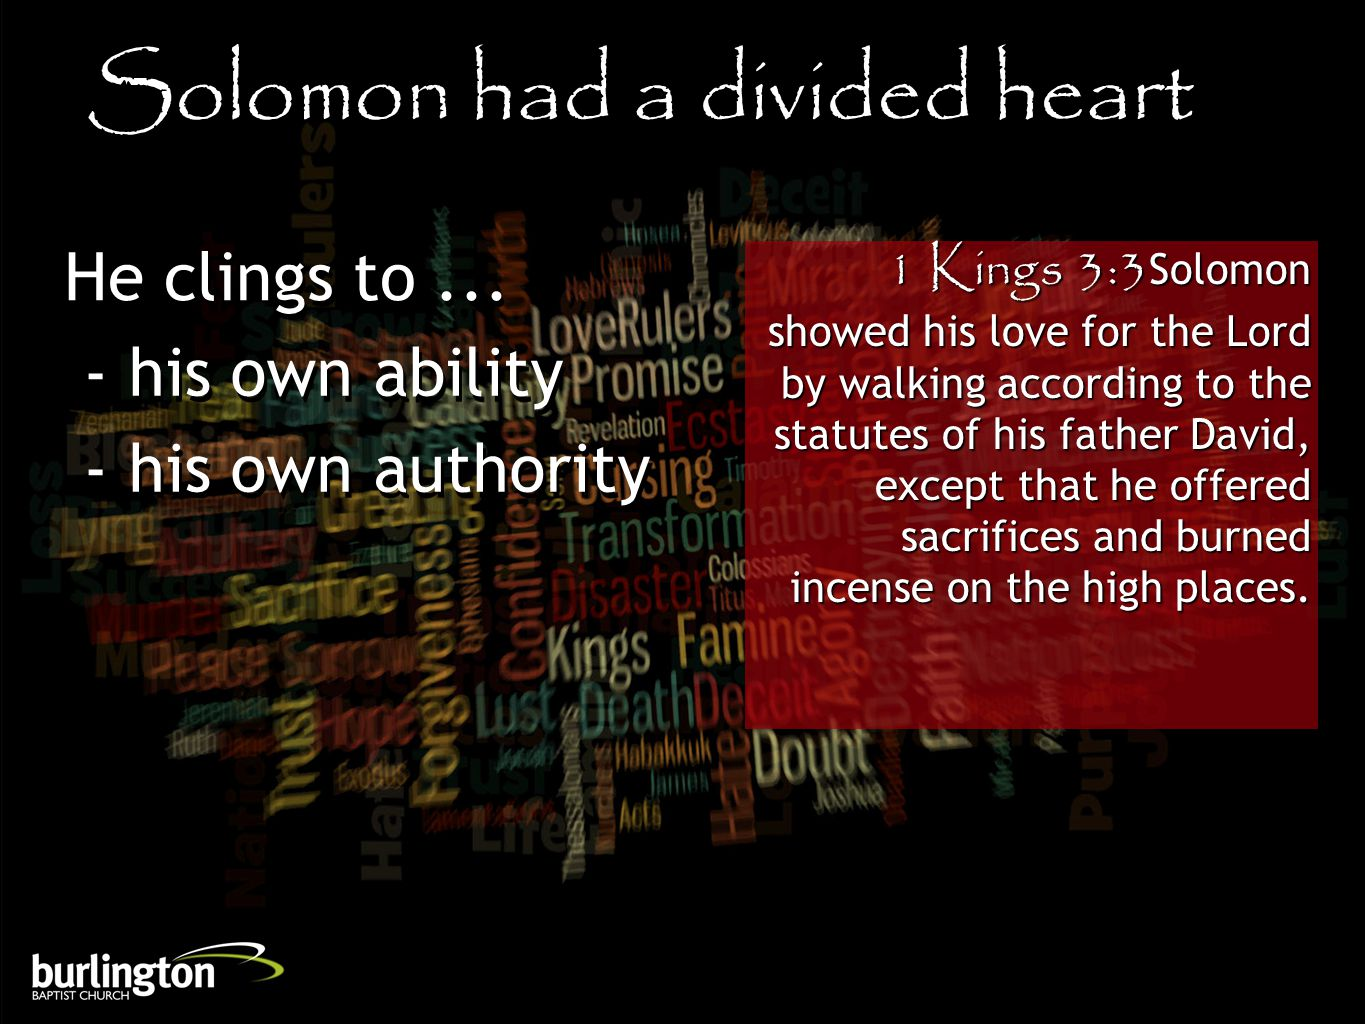 1 Kings 3:3Solomon showed his love for the Lord by walking according to the statutes of his father David, except that he offered sacrifices and burned